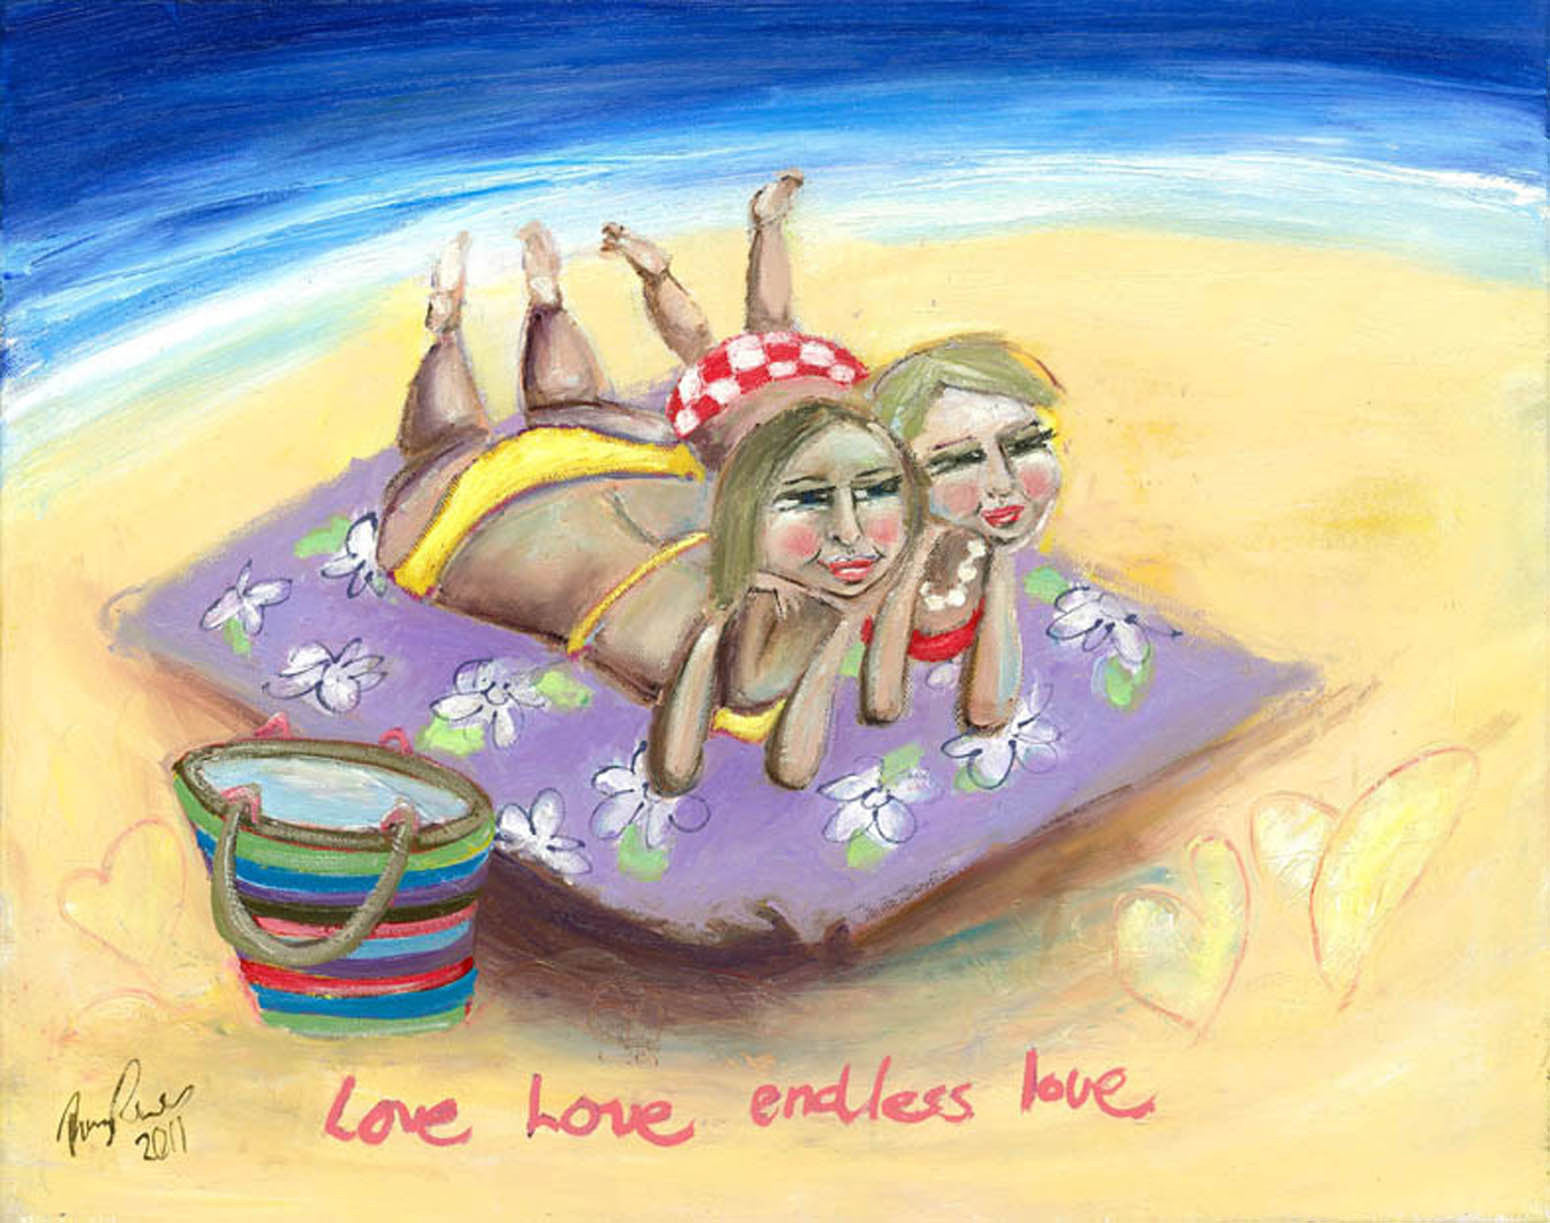 Love Love Endless Love - Year 2011